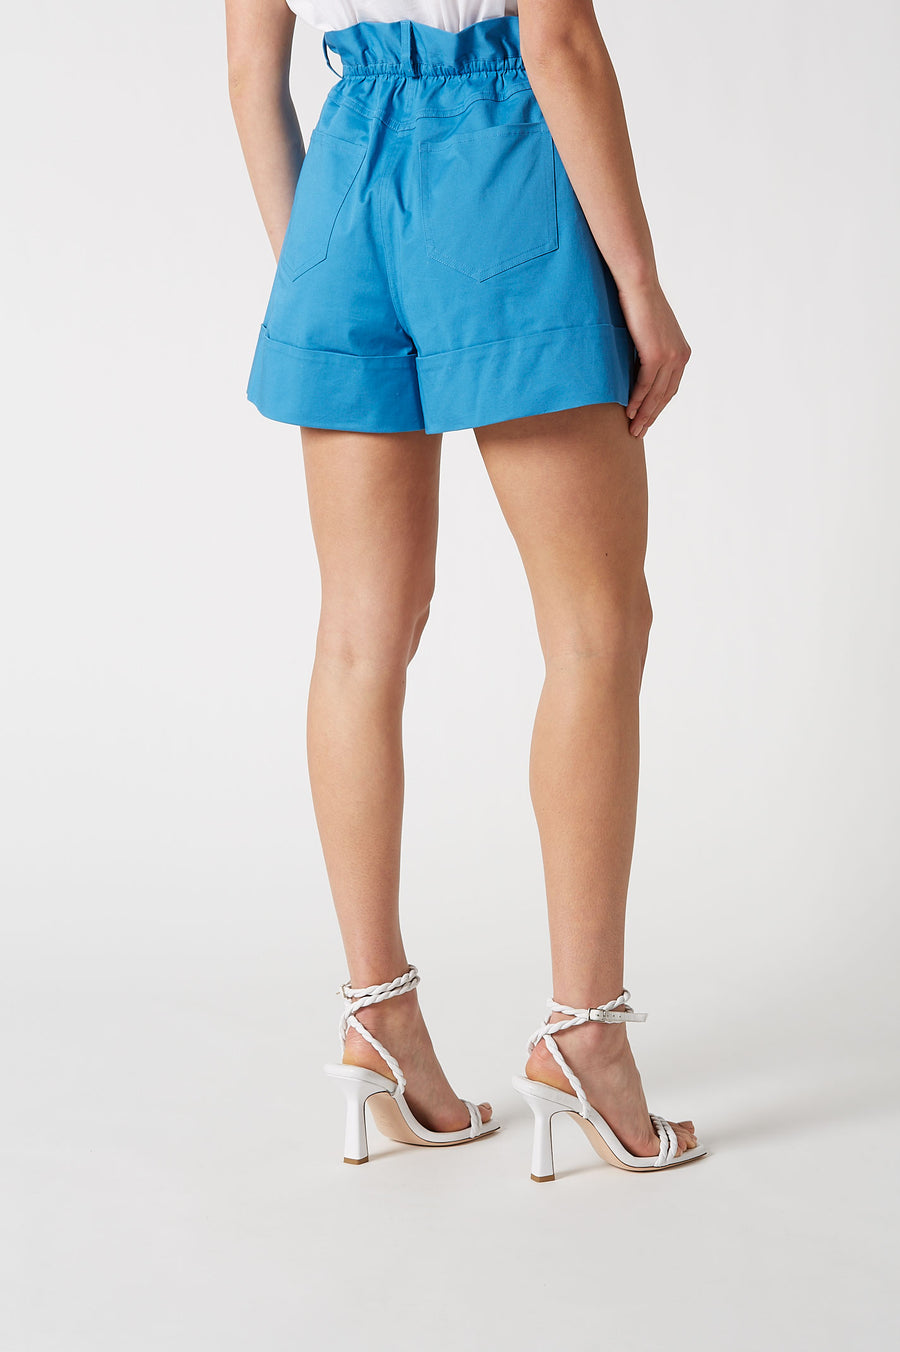 Cut from turchese cotton, the shorts feature a flattering paper bag waist and cuffed hem, sitting at a comfortable mid-thigh length.